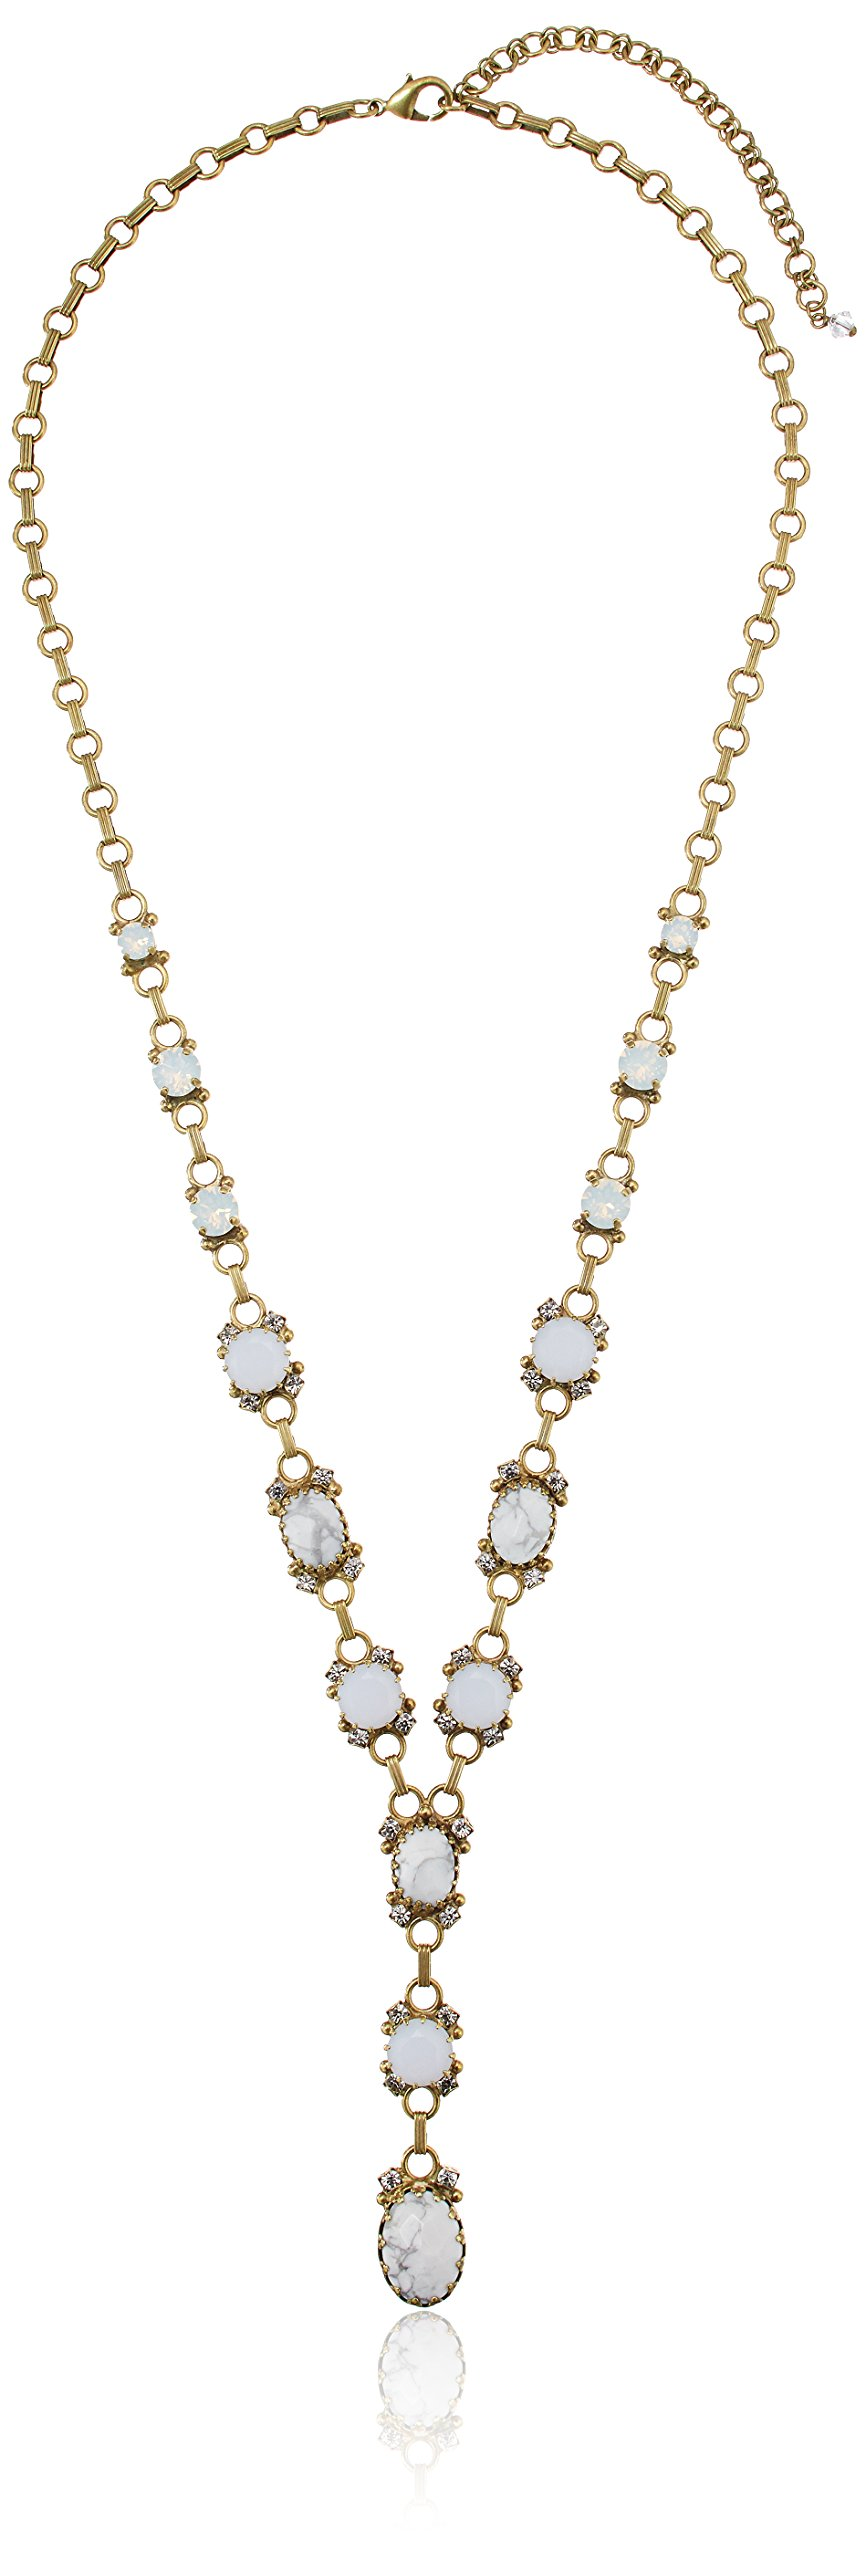 Sorrelli ''Pearl Luster'' Statement Y-Shaped Necklace, 27'' + 4'' Extender